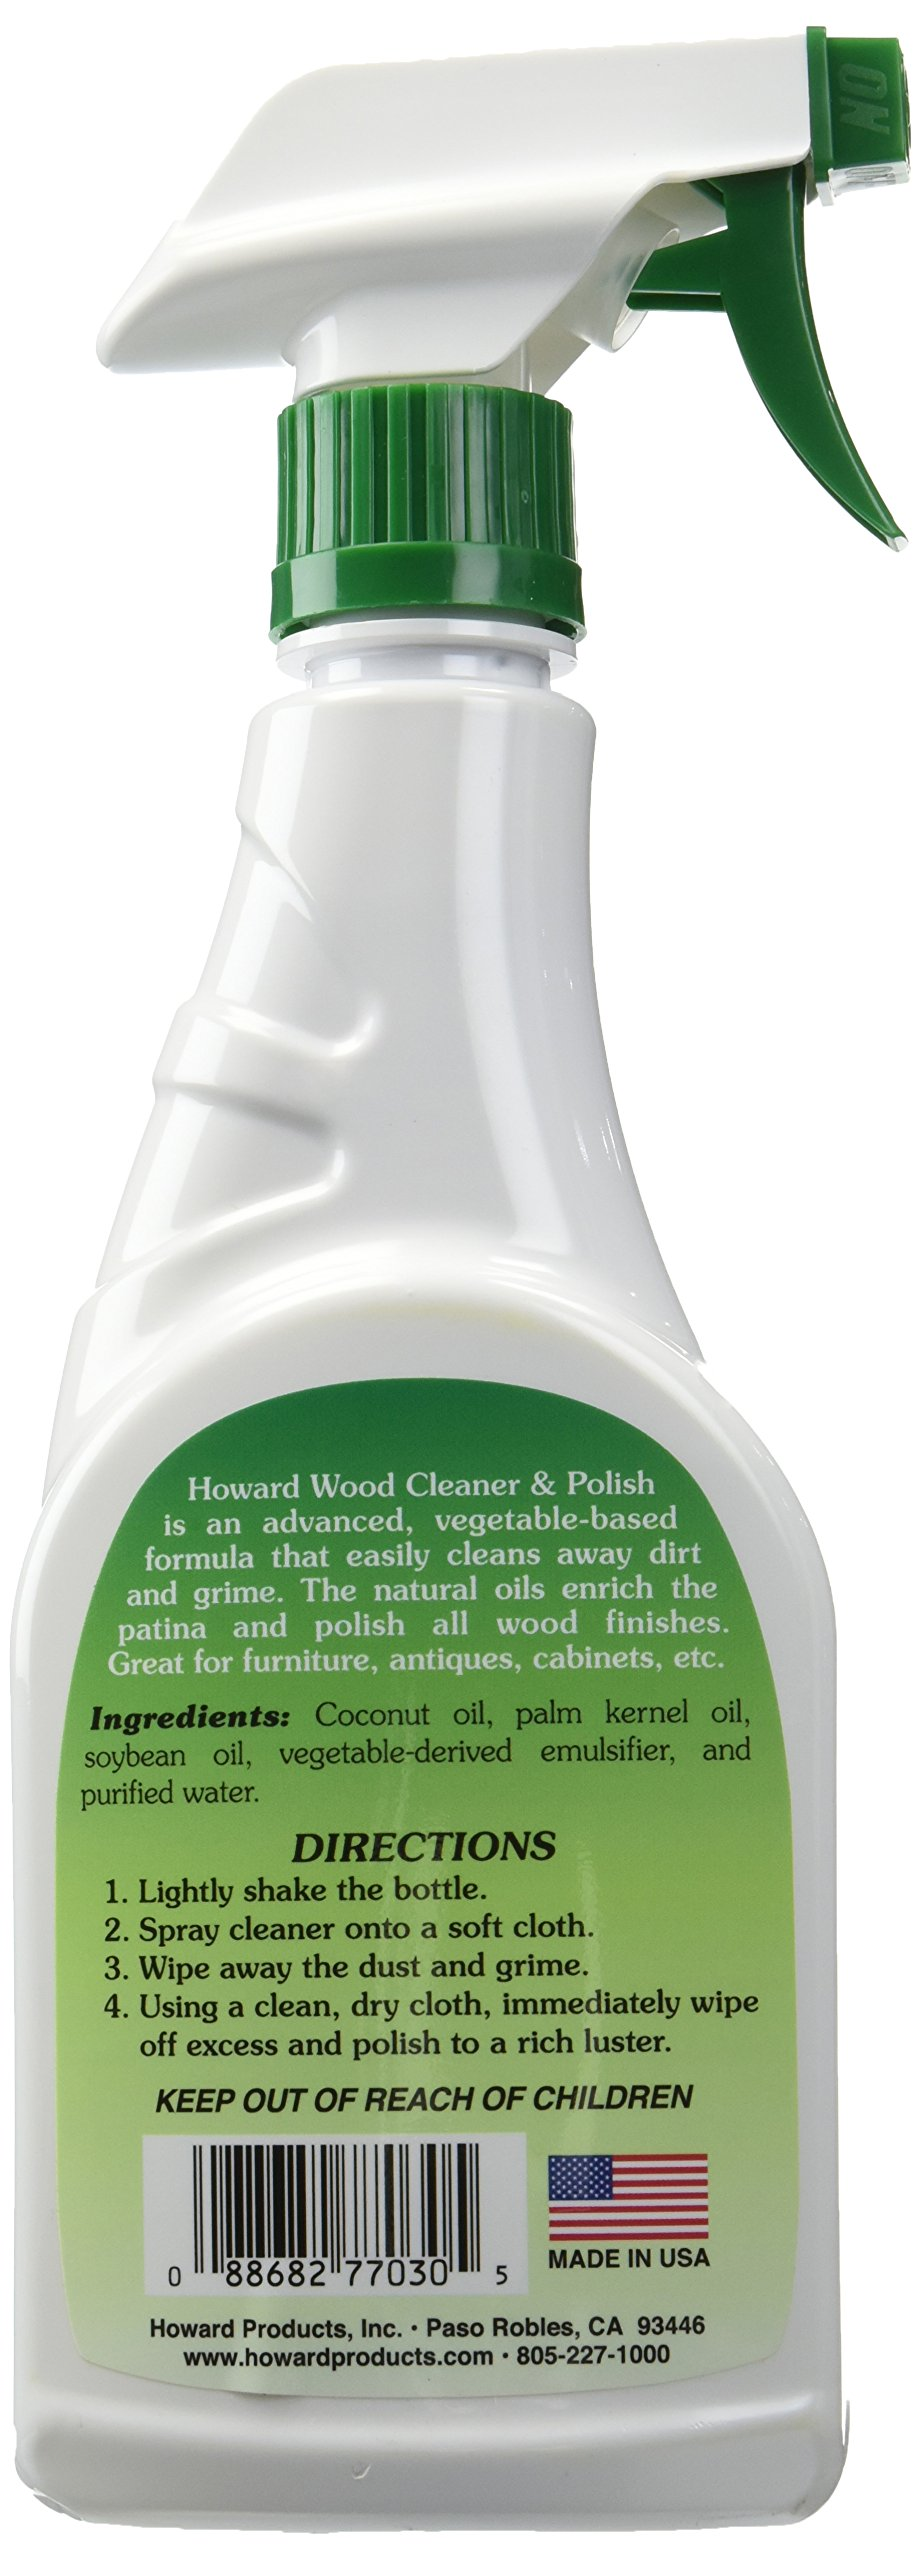 Howard Products Natural Stainless Steel Cleaner Trigger Spray (2-Pack, Fragrance-Free) by Howard Products (Image #2)